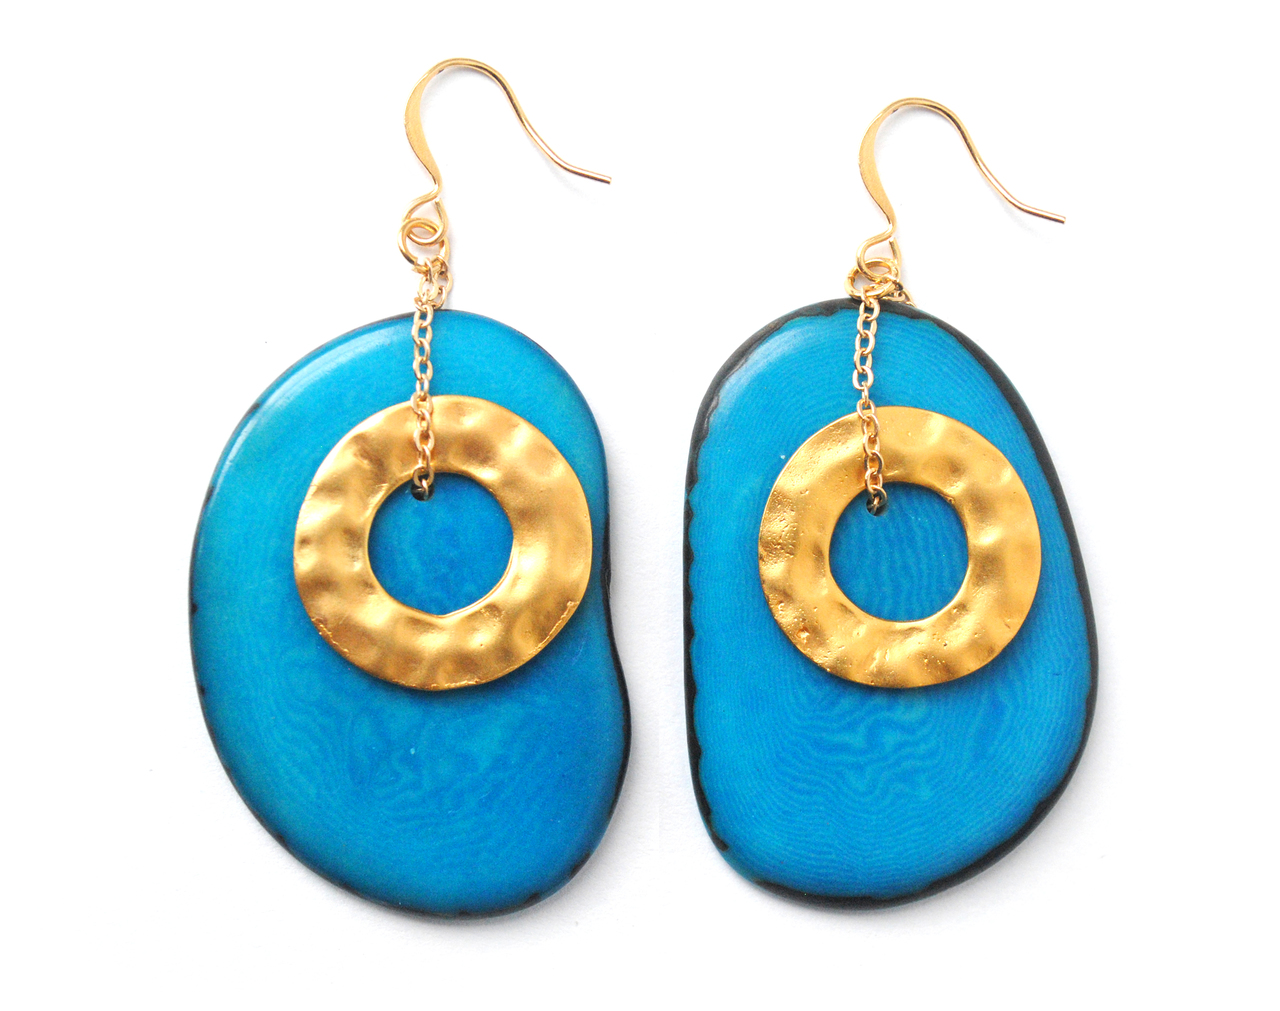 Solar Eclipse Earrings – Blue